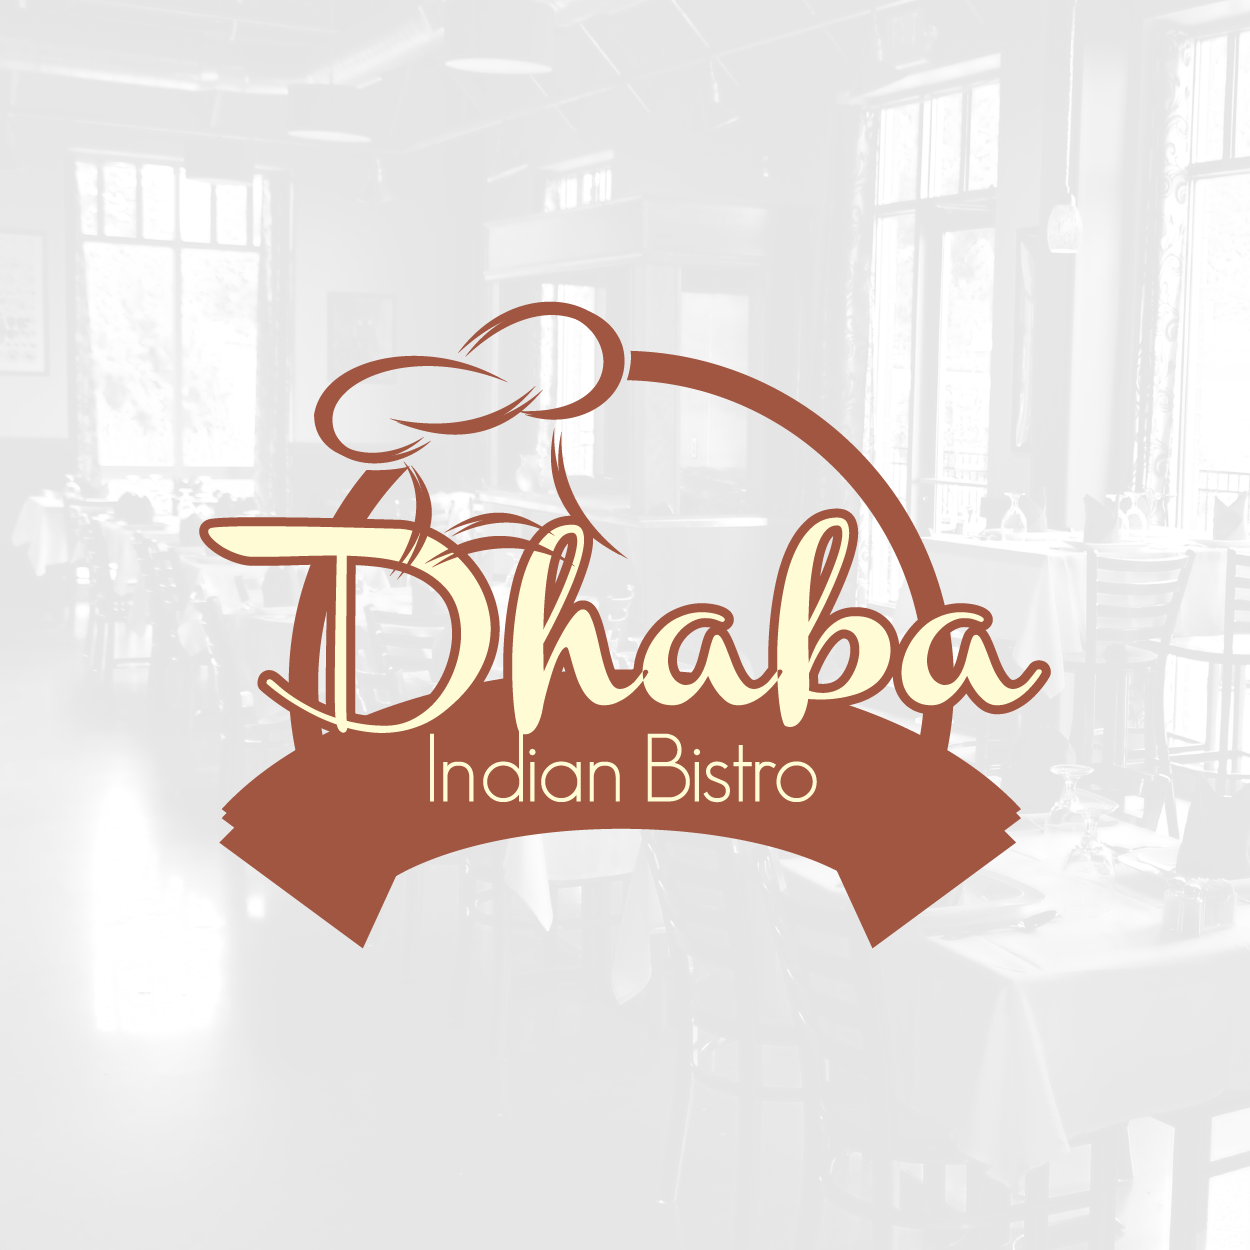 Dhaba indian bistro-01.png